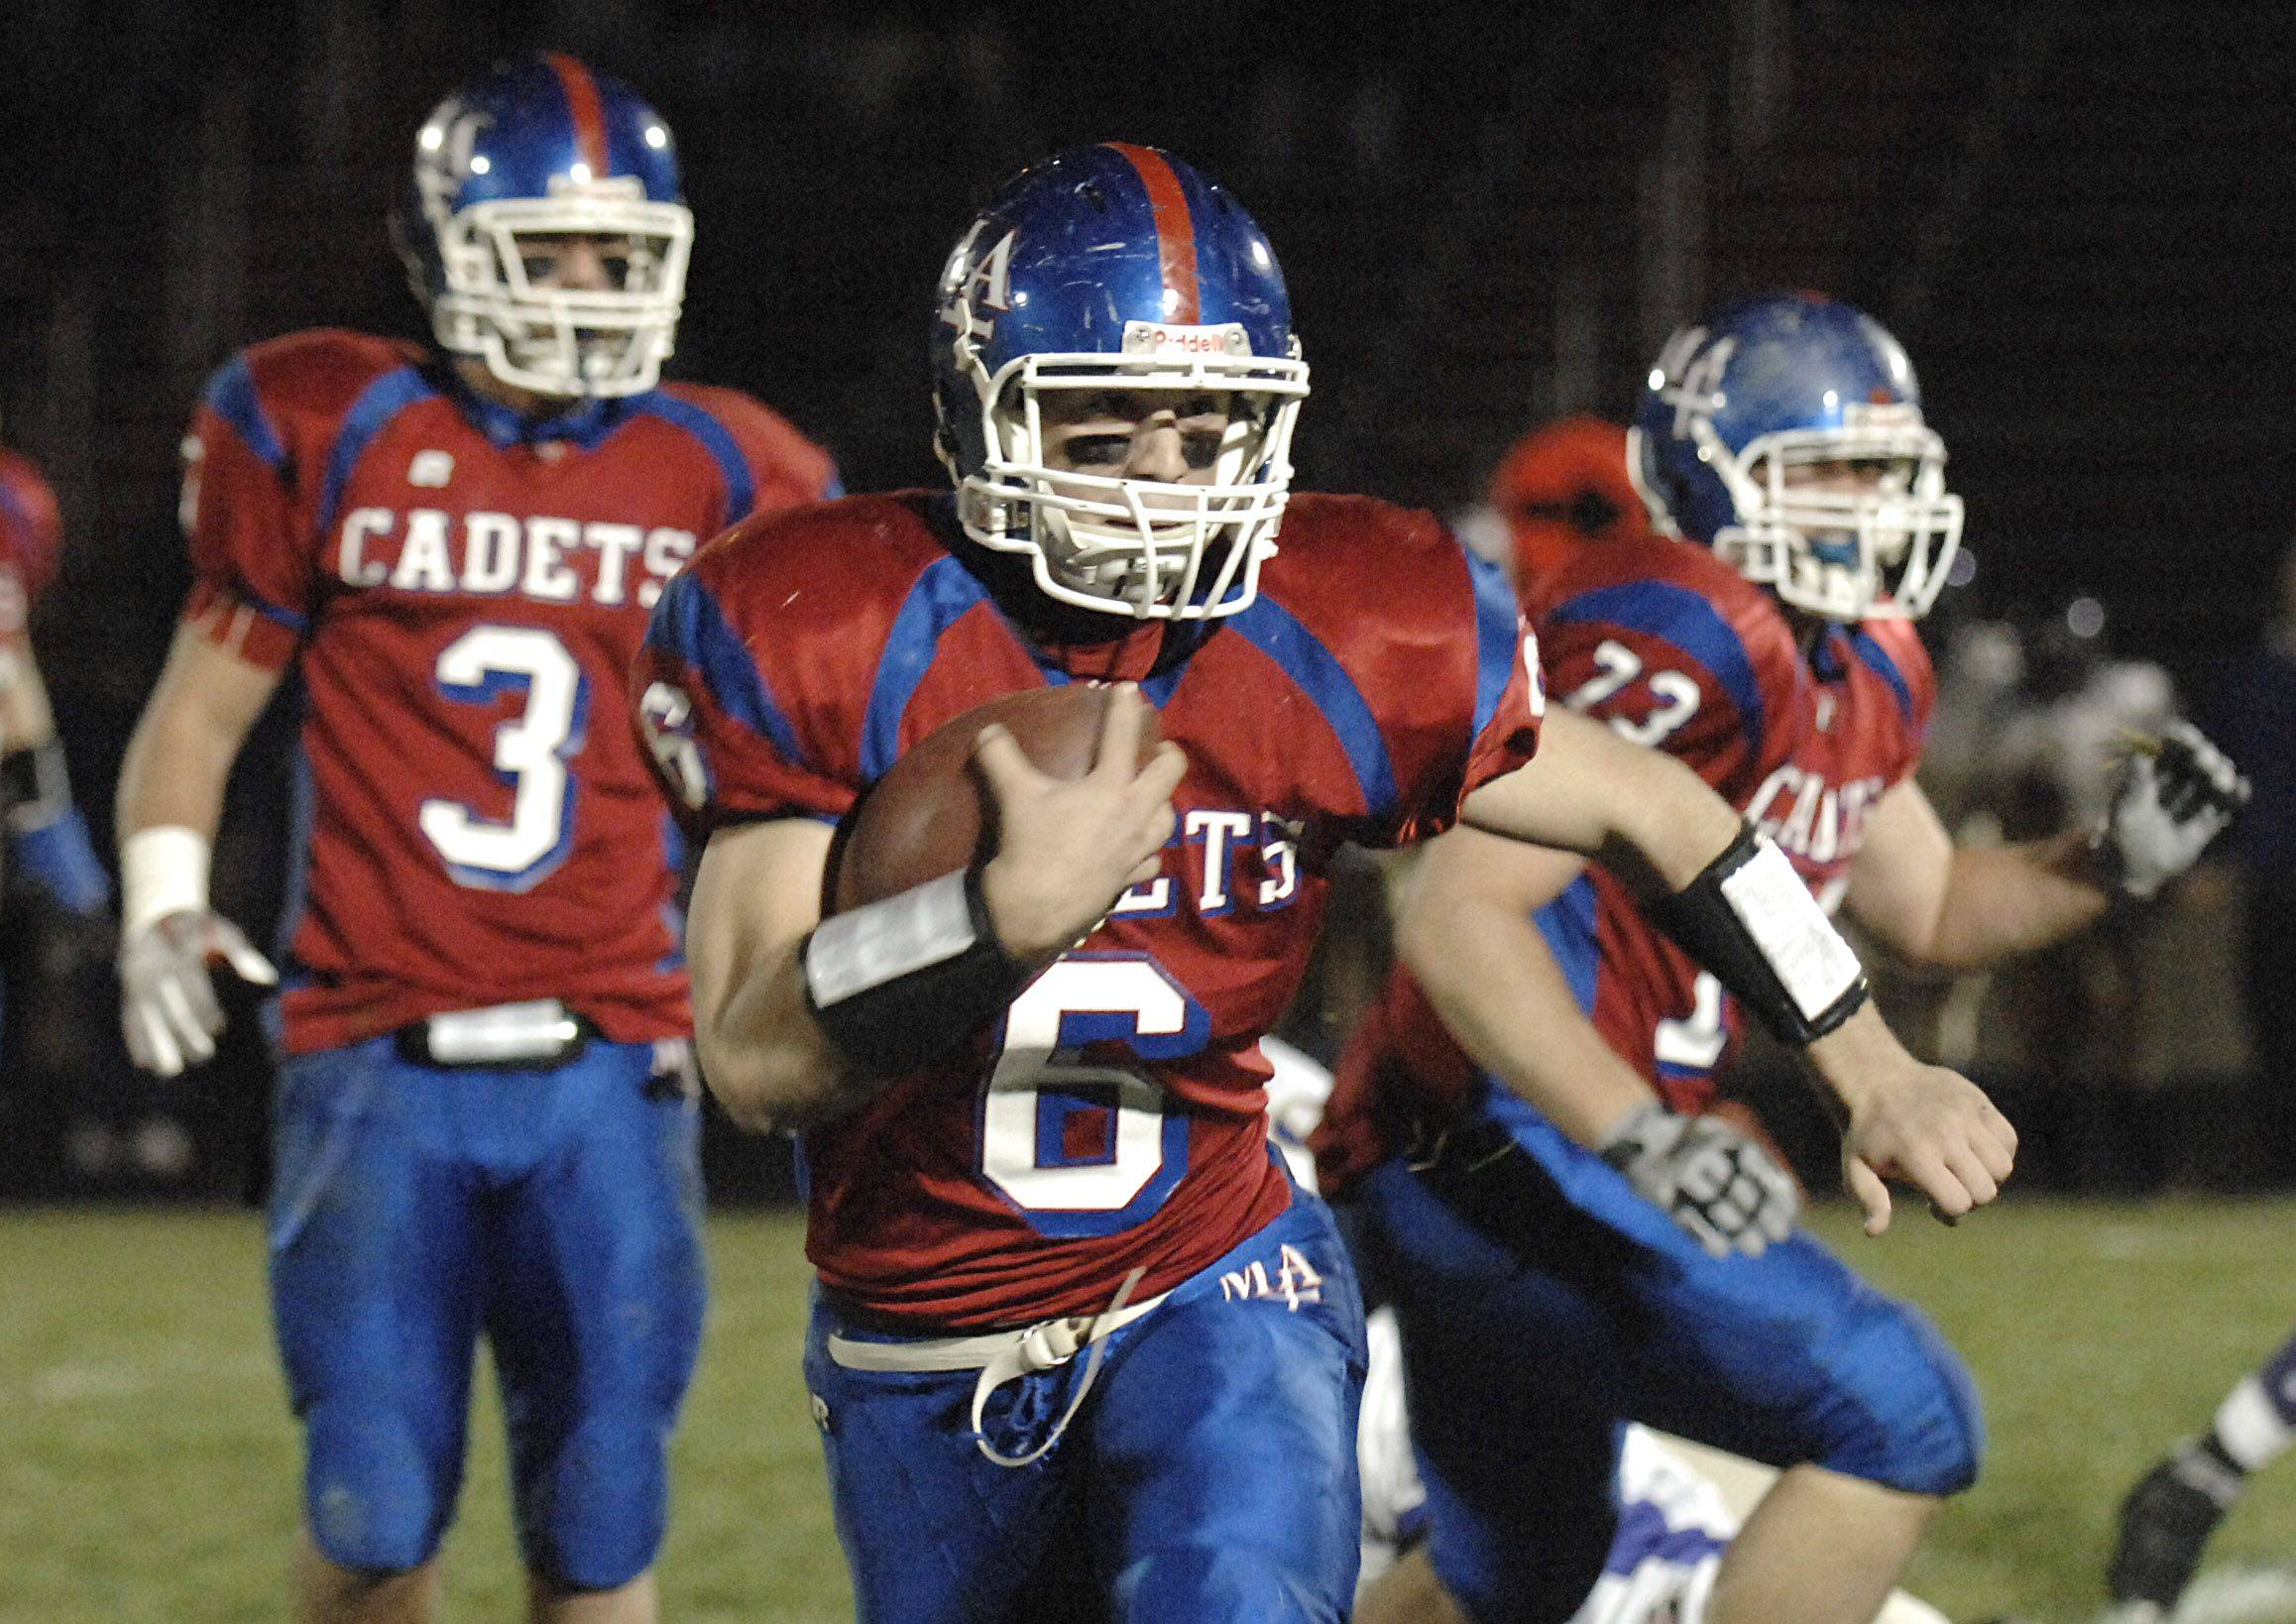 Marmion's Mike Carbonara takes off after receiving the ball in the first quarter vs Thorton Fractional North on Friday, October 29.